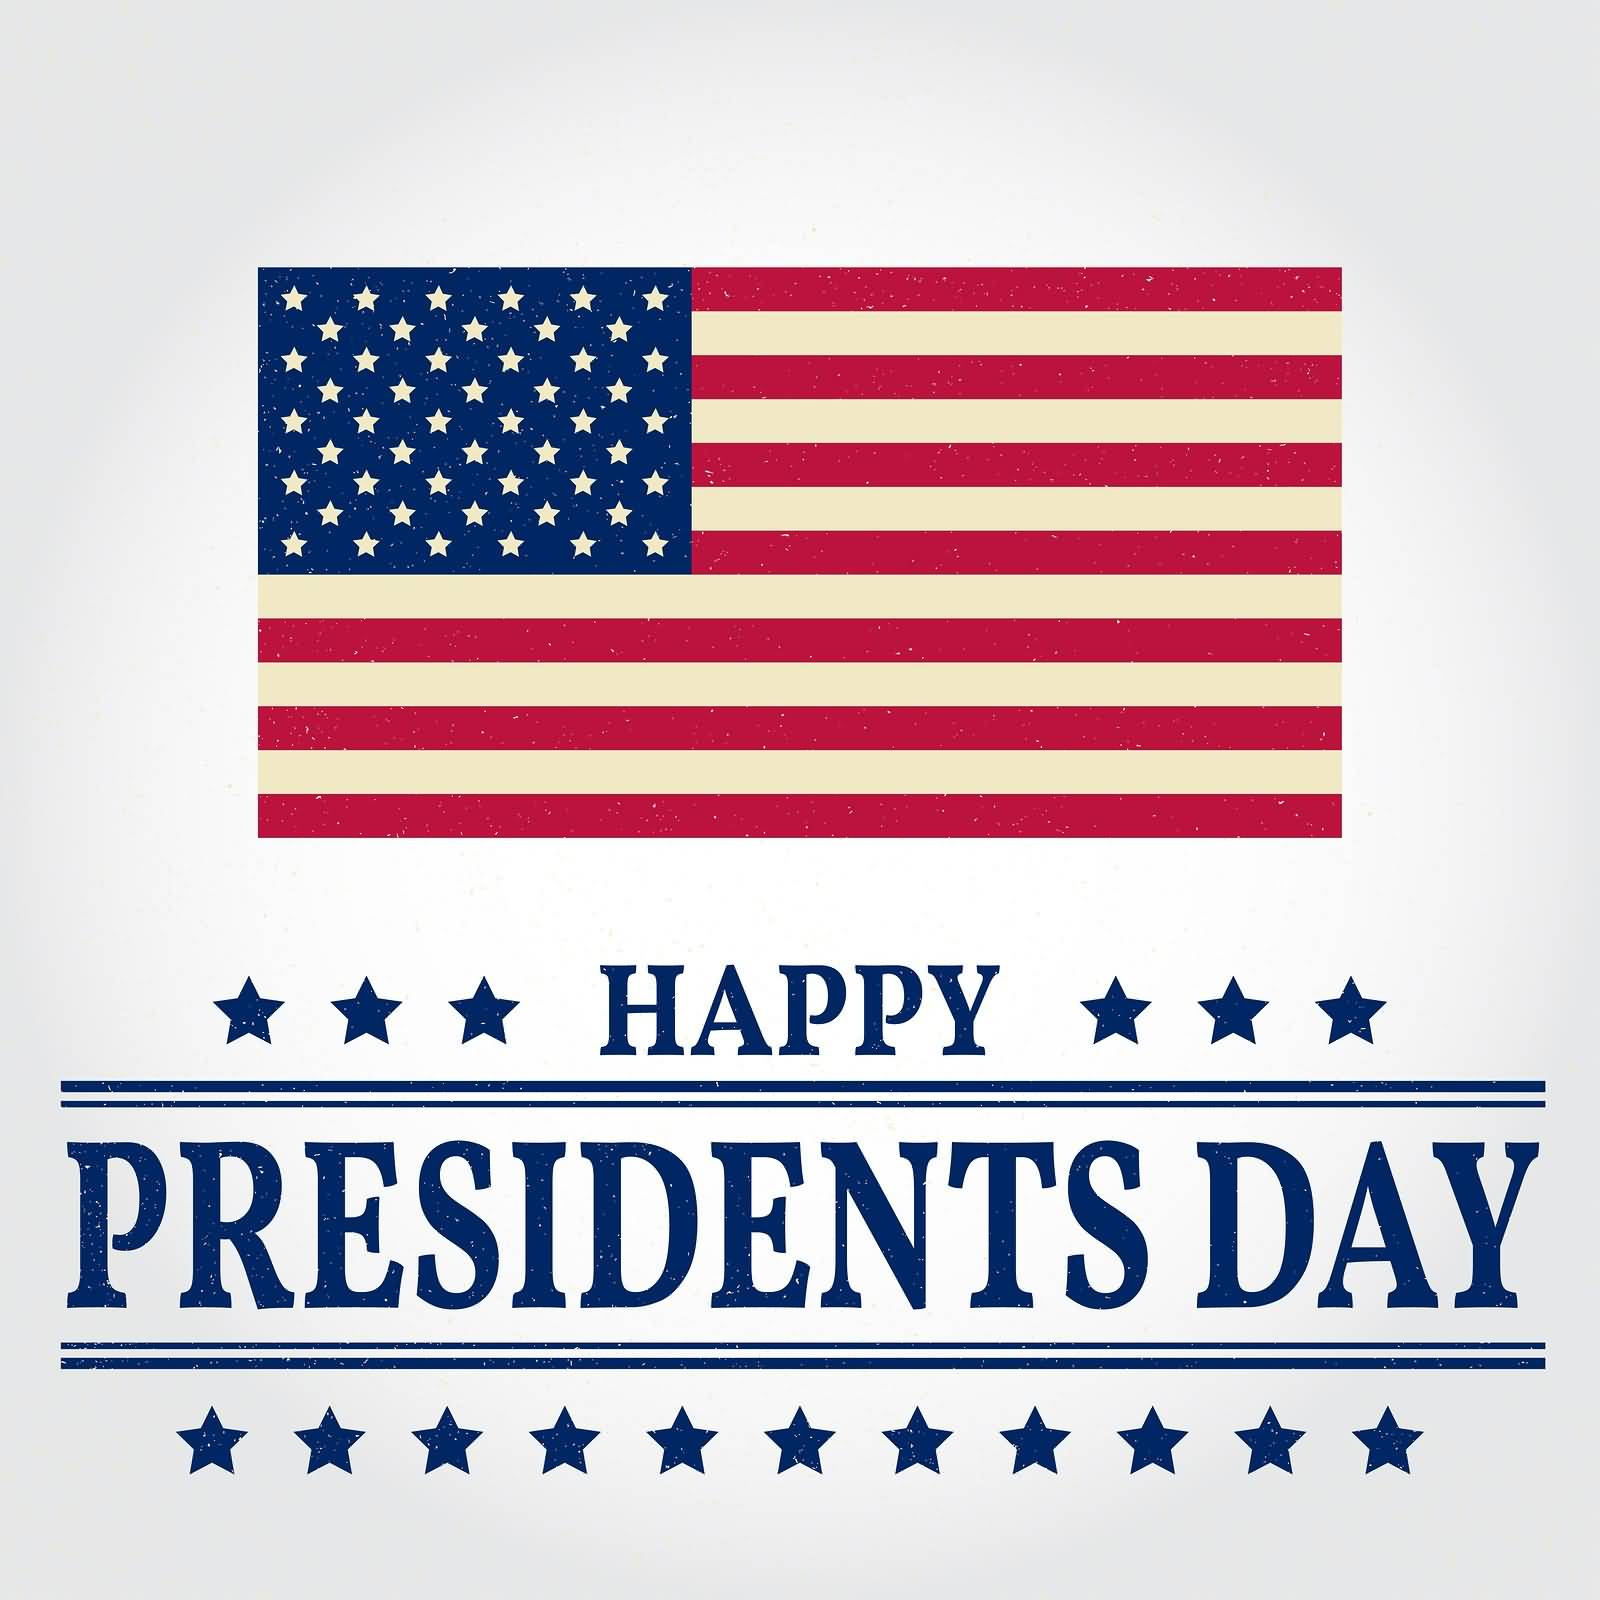 6-Presidents Day Wishes